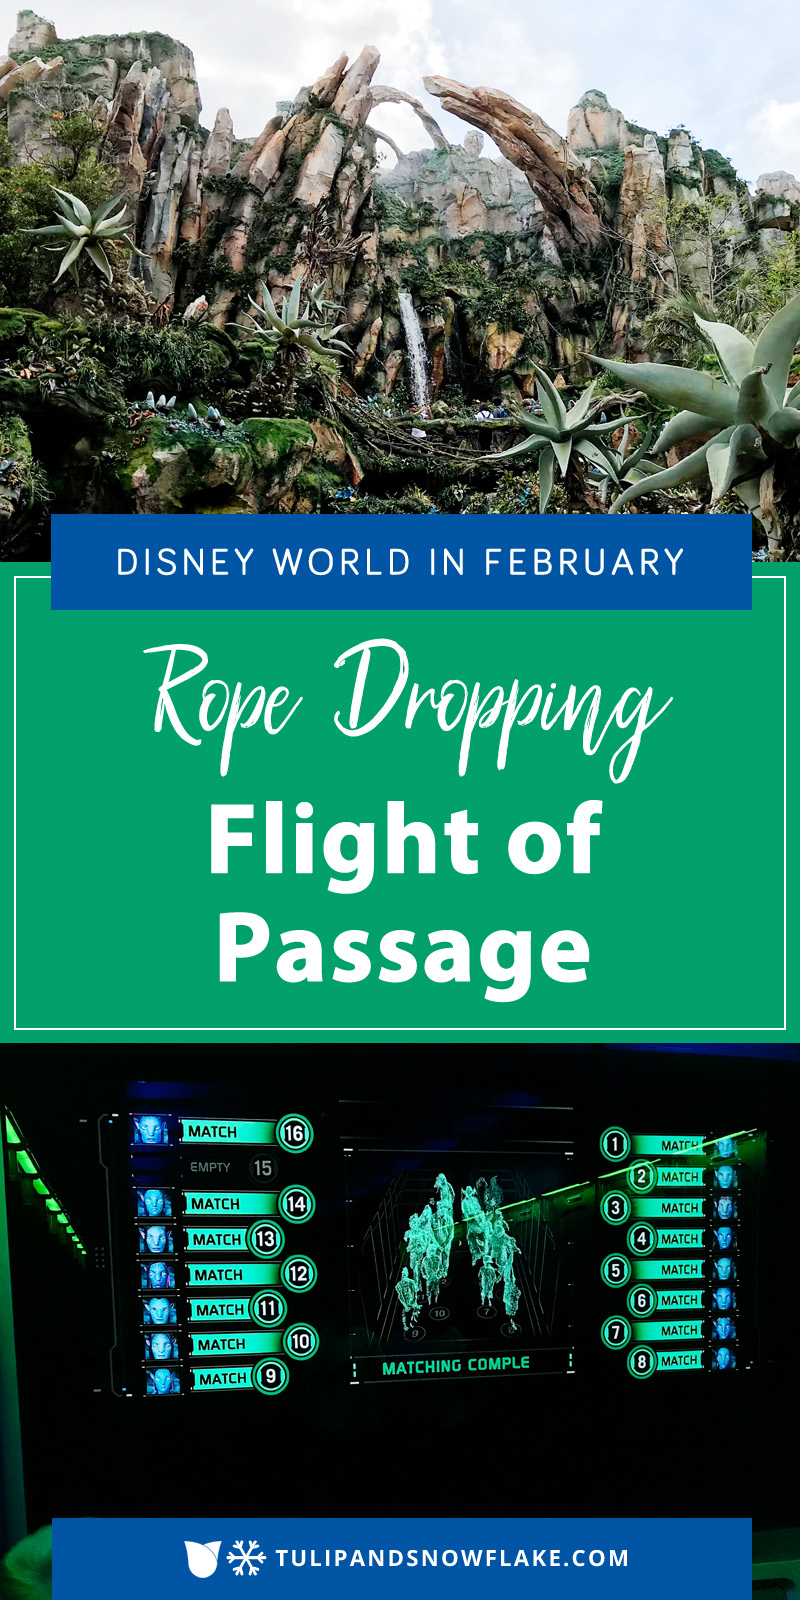 Rope Dropping Flight of Passage